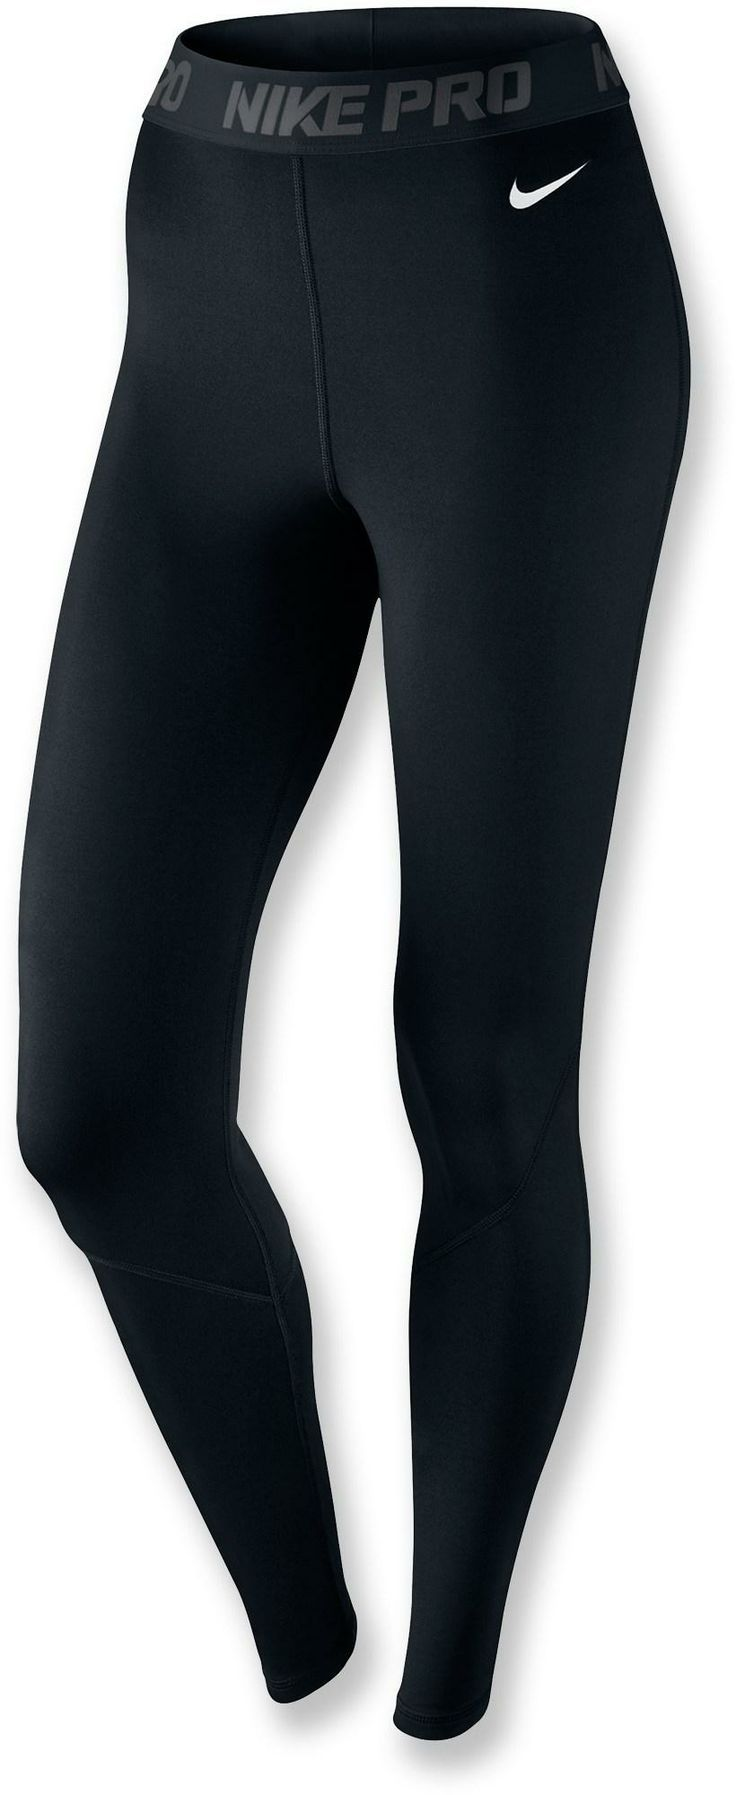 Perfect for cold weather runs. Nike Pro Hyperwarm Tights III - Women's.